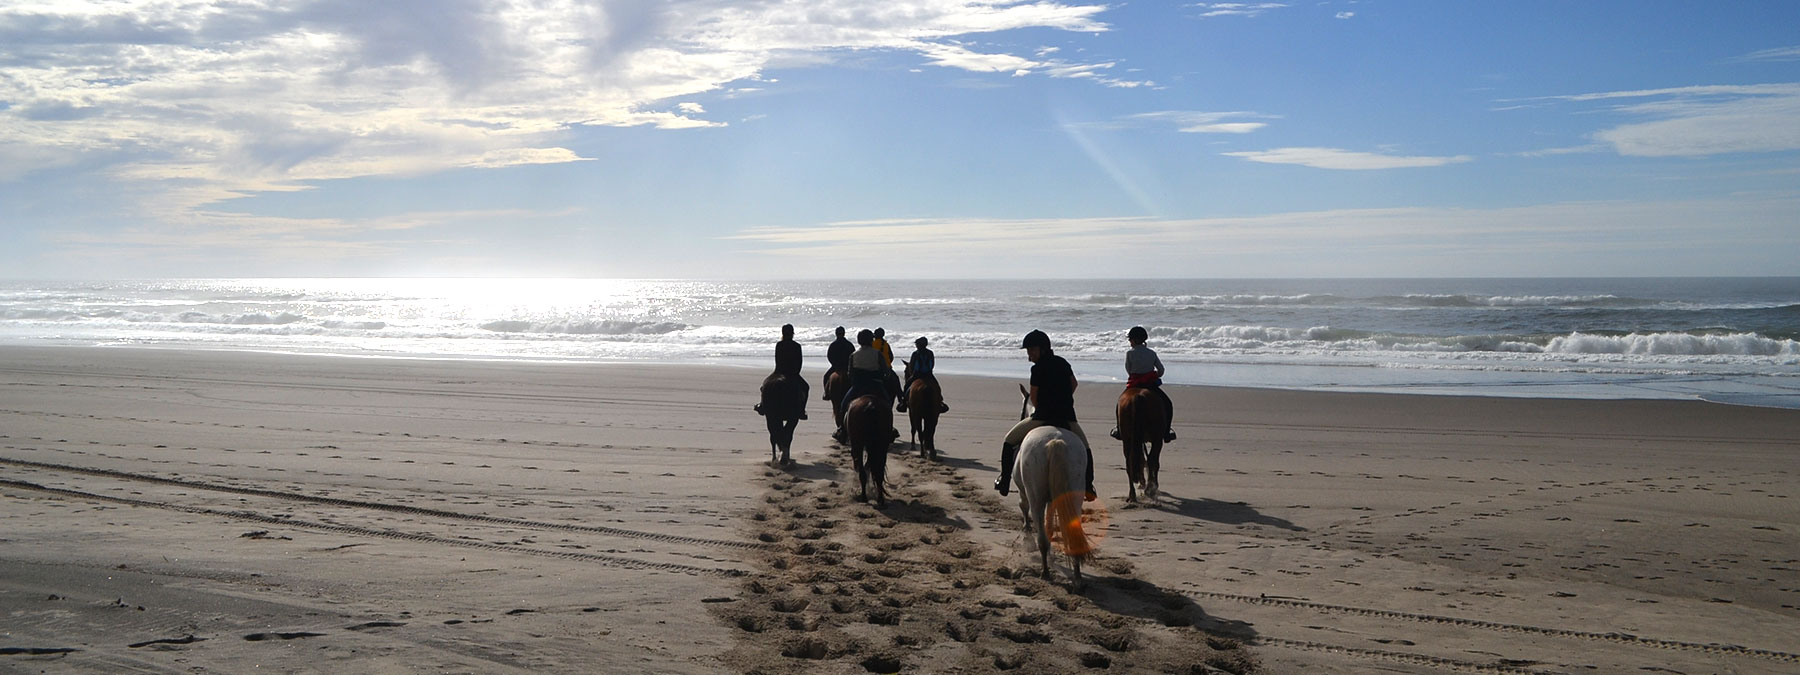 English Horseback Riding Tours In The Pacific Northwest